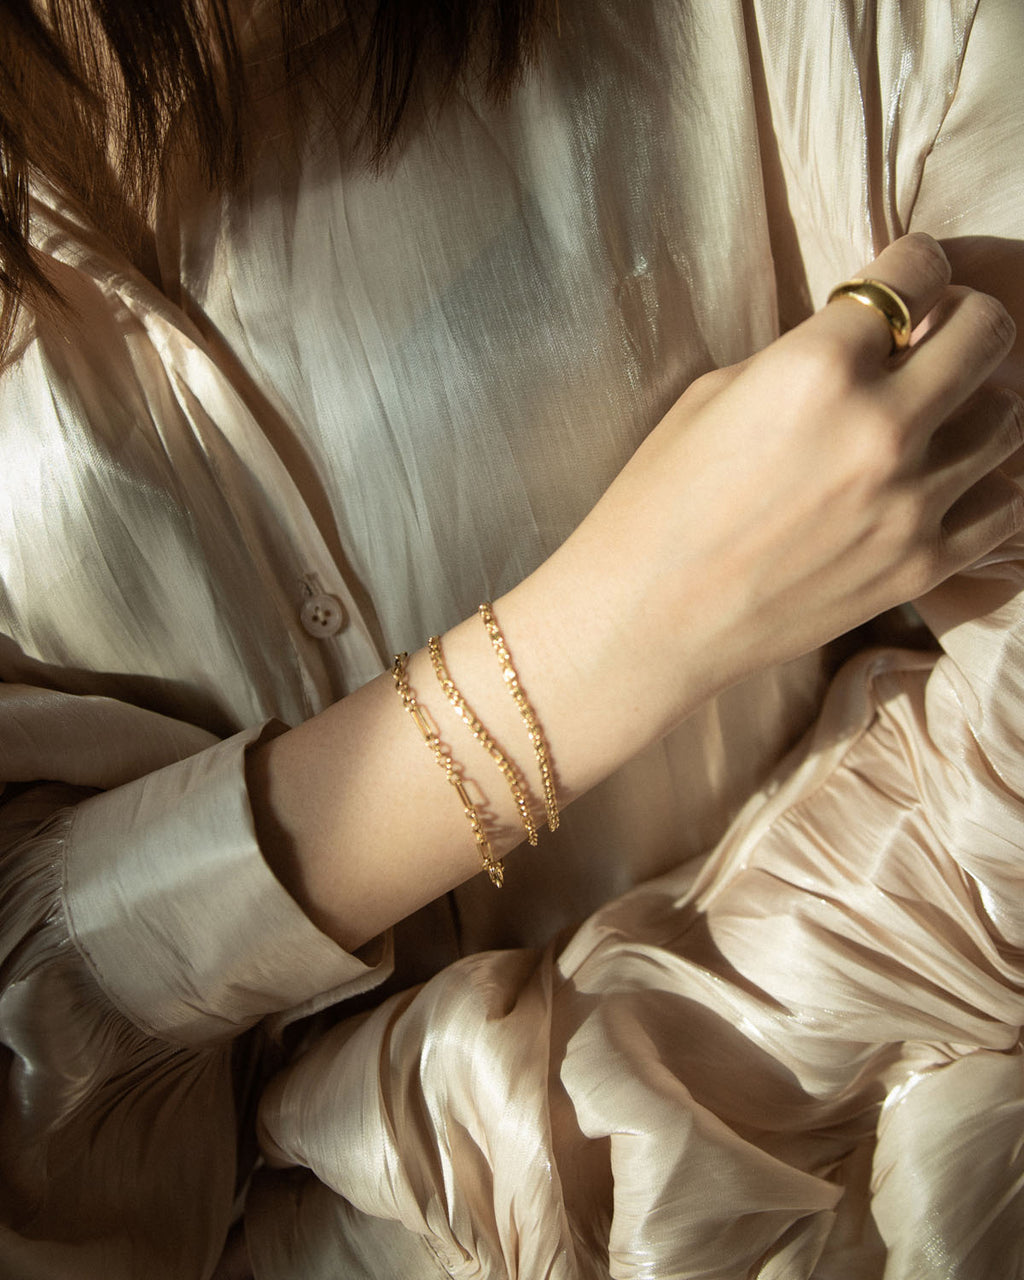 Get layering with The Hexad's essential chain bracelets